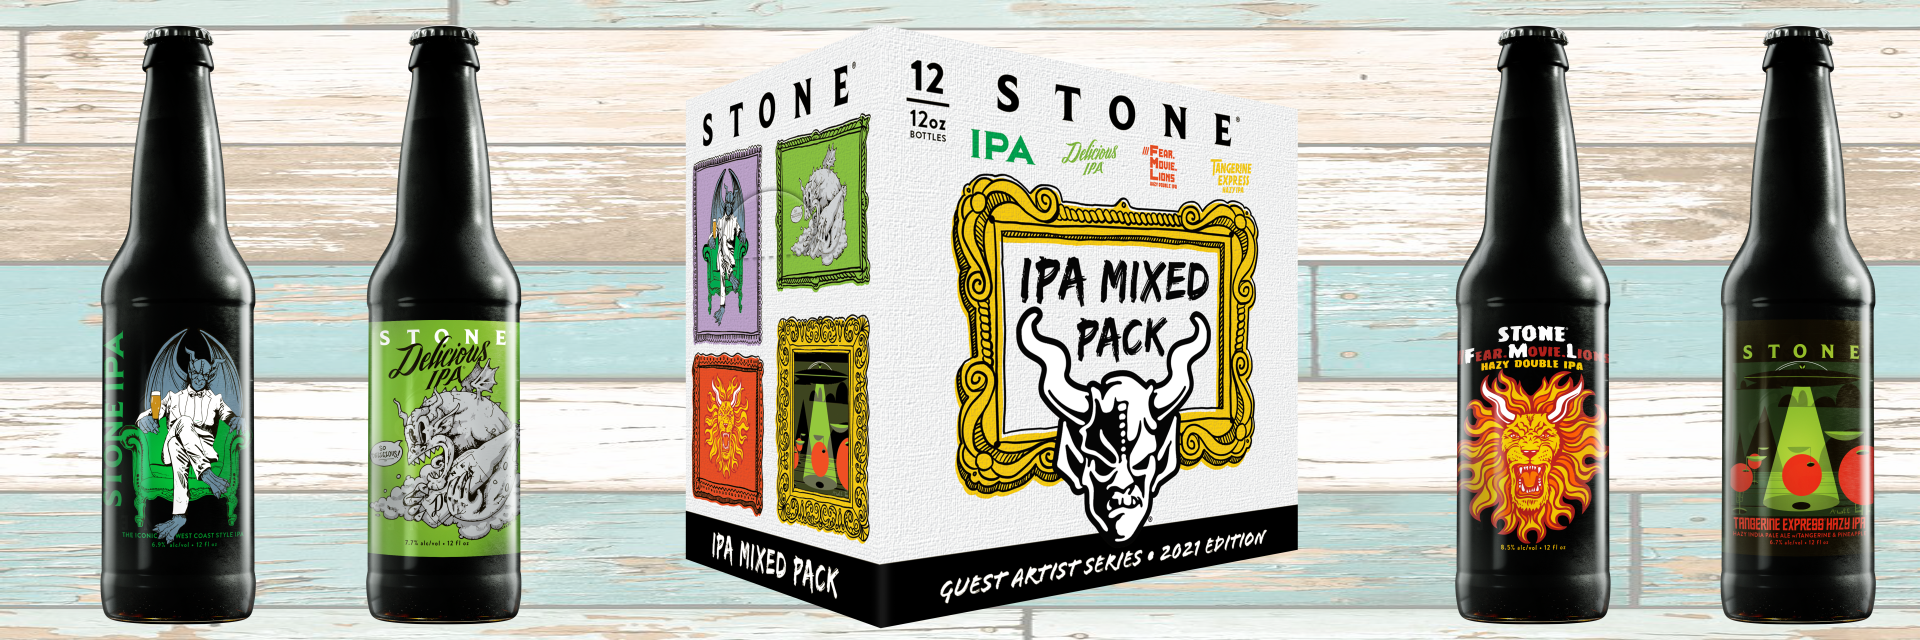 Stone Brewing Lends Labels to Artists in Guest Artist IPA Mixed Pack